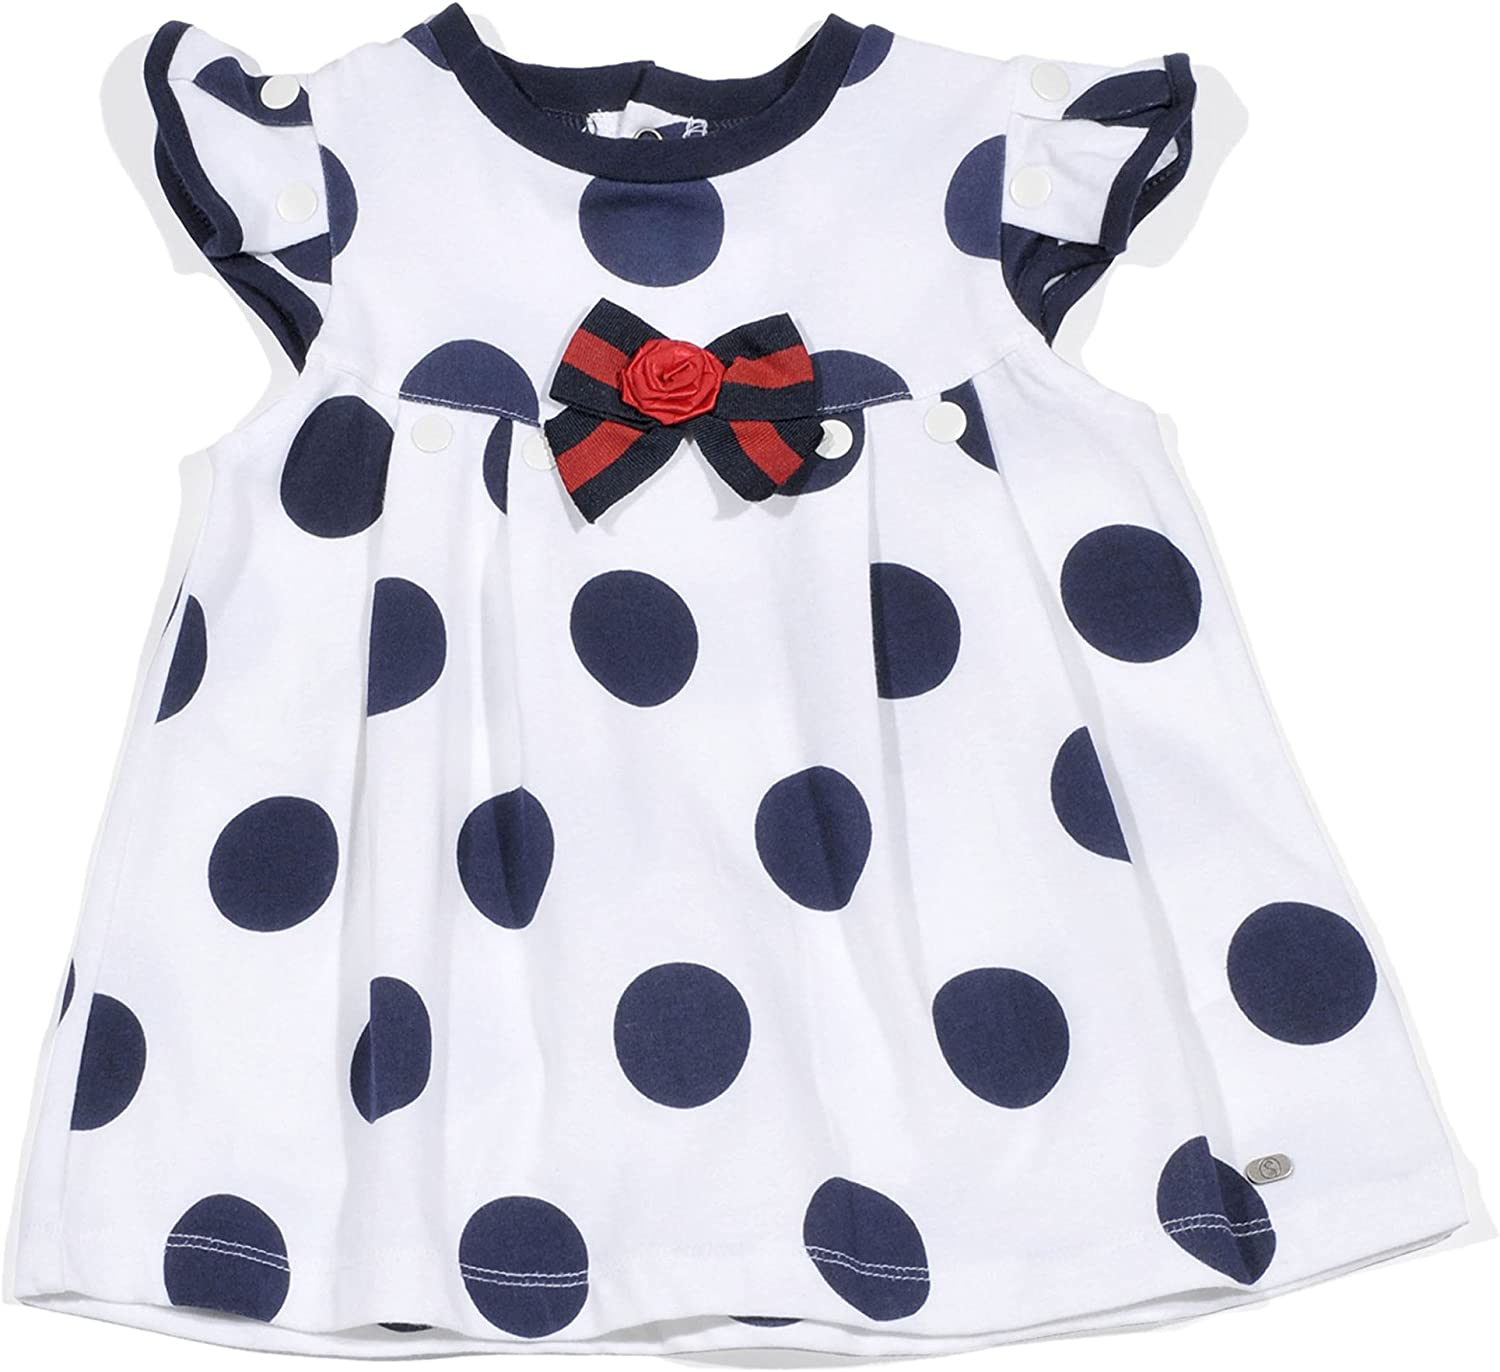 Petit Lem Infant and Toddler Girls Pretty by the Sea Polka Dot Dress